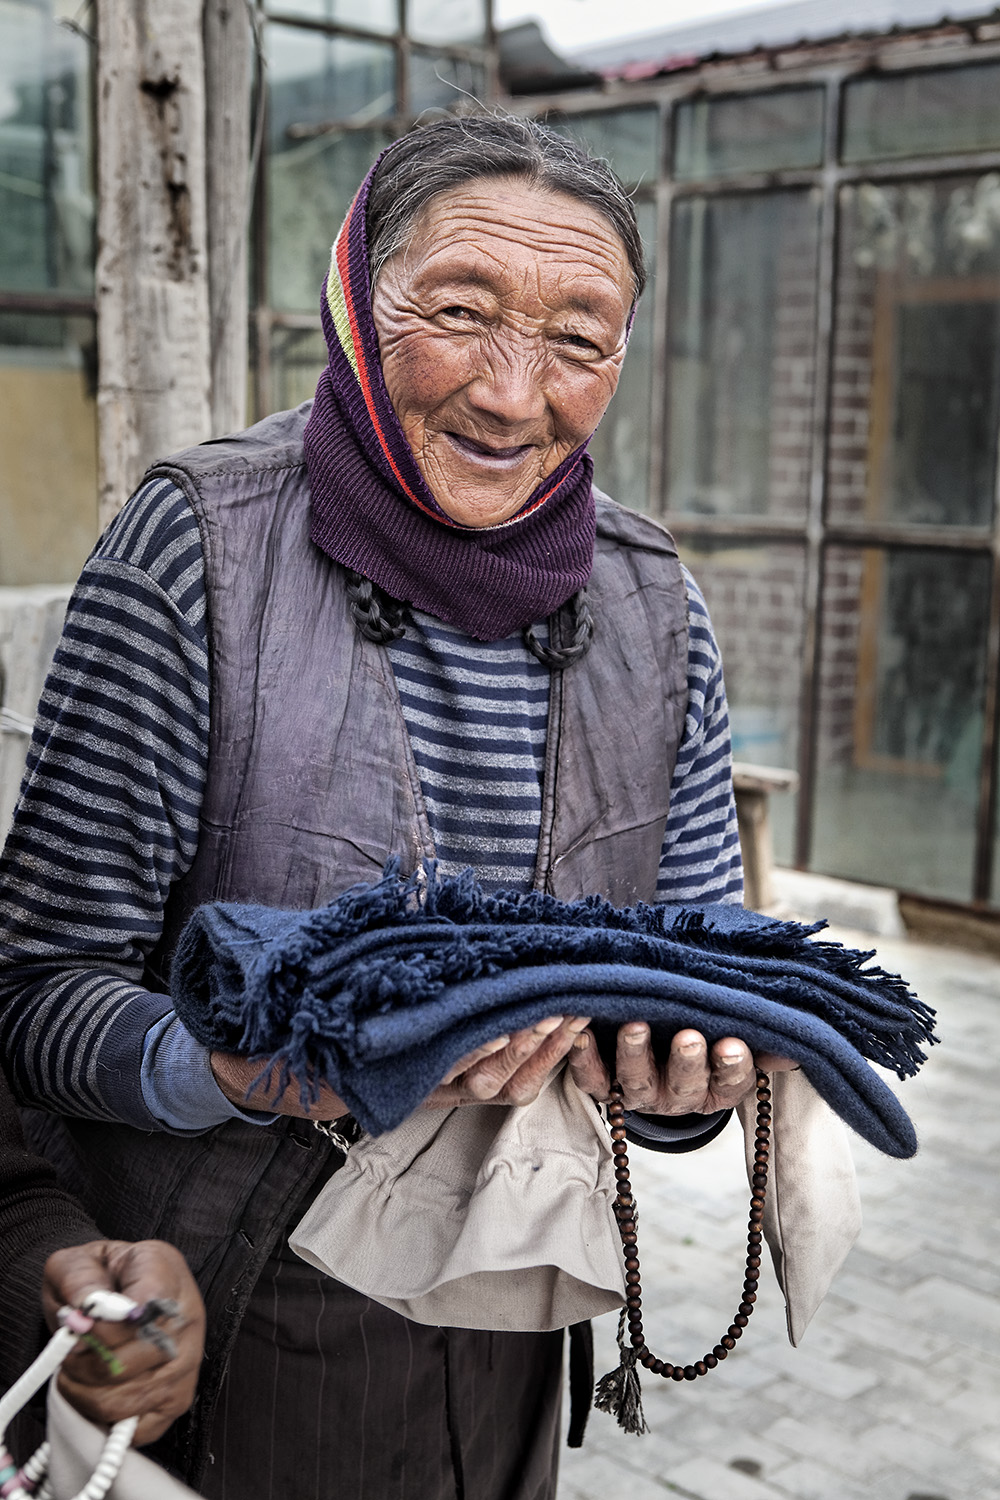 Happy Sagadawa! Everyone over 80 years old in Ritoma is gifted a new shawl. Norlha atelier, Ritoma, Amdo, Tibet